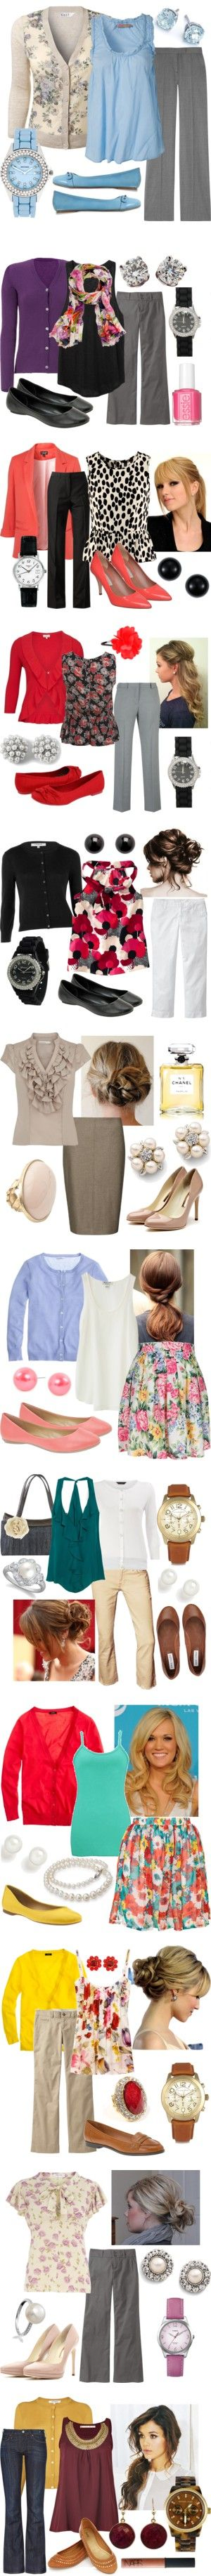 "footwear store coupons cute ideas for springtime ""Teaching Outfits"" by qtpiekelso on Polyvore 